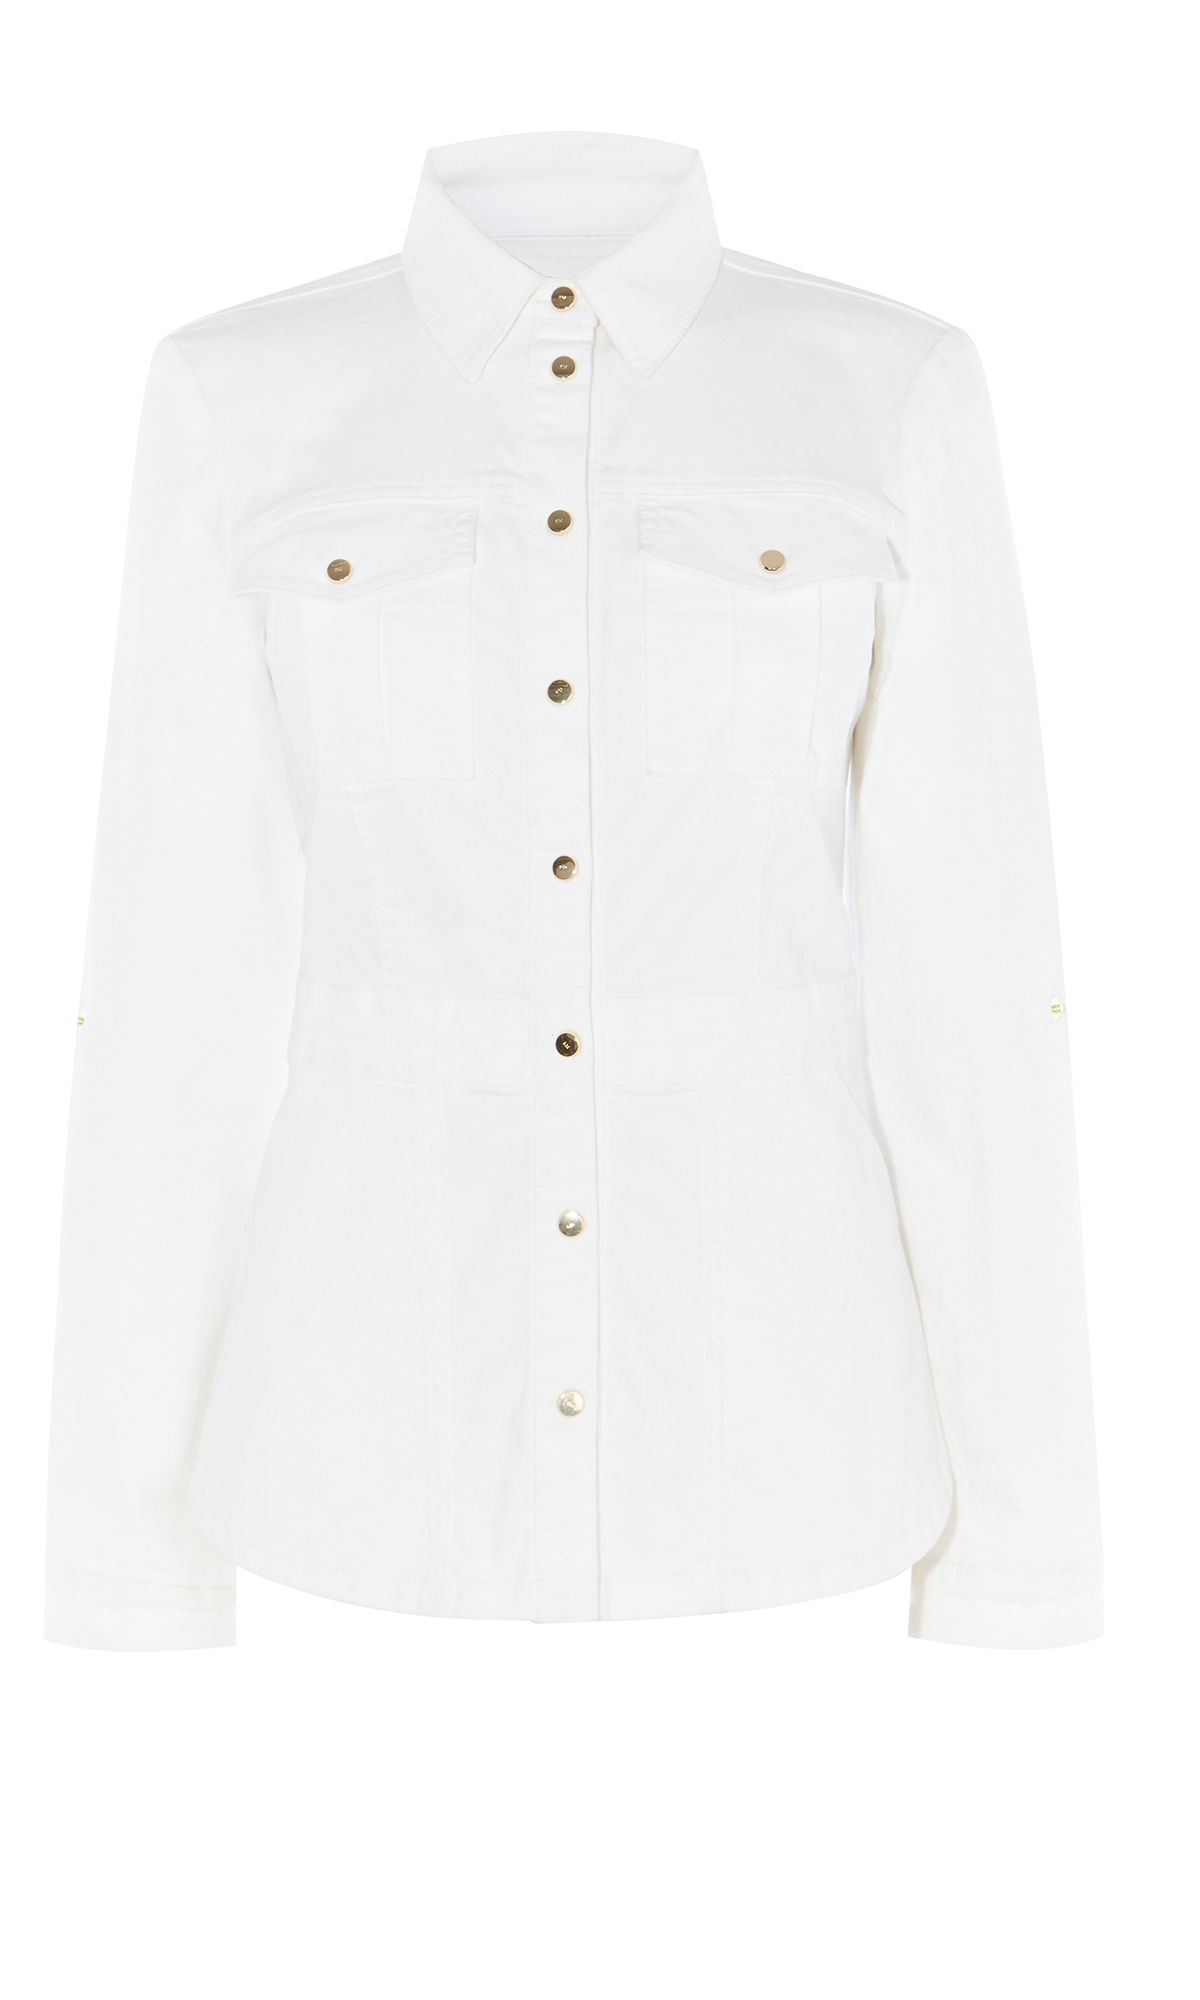 Karen Millen White Denim Jacket, White